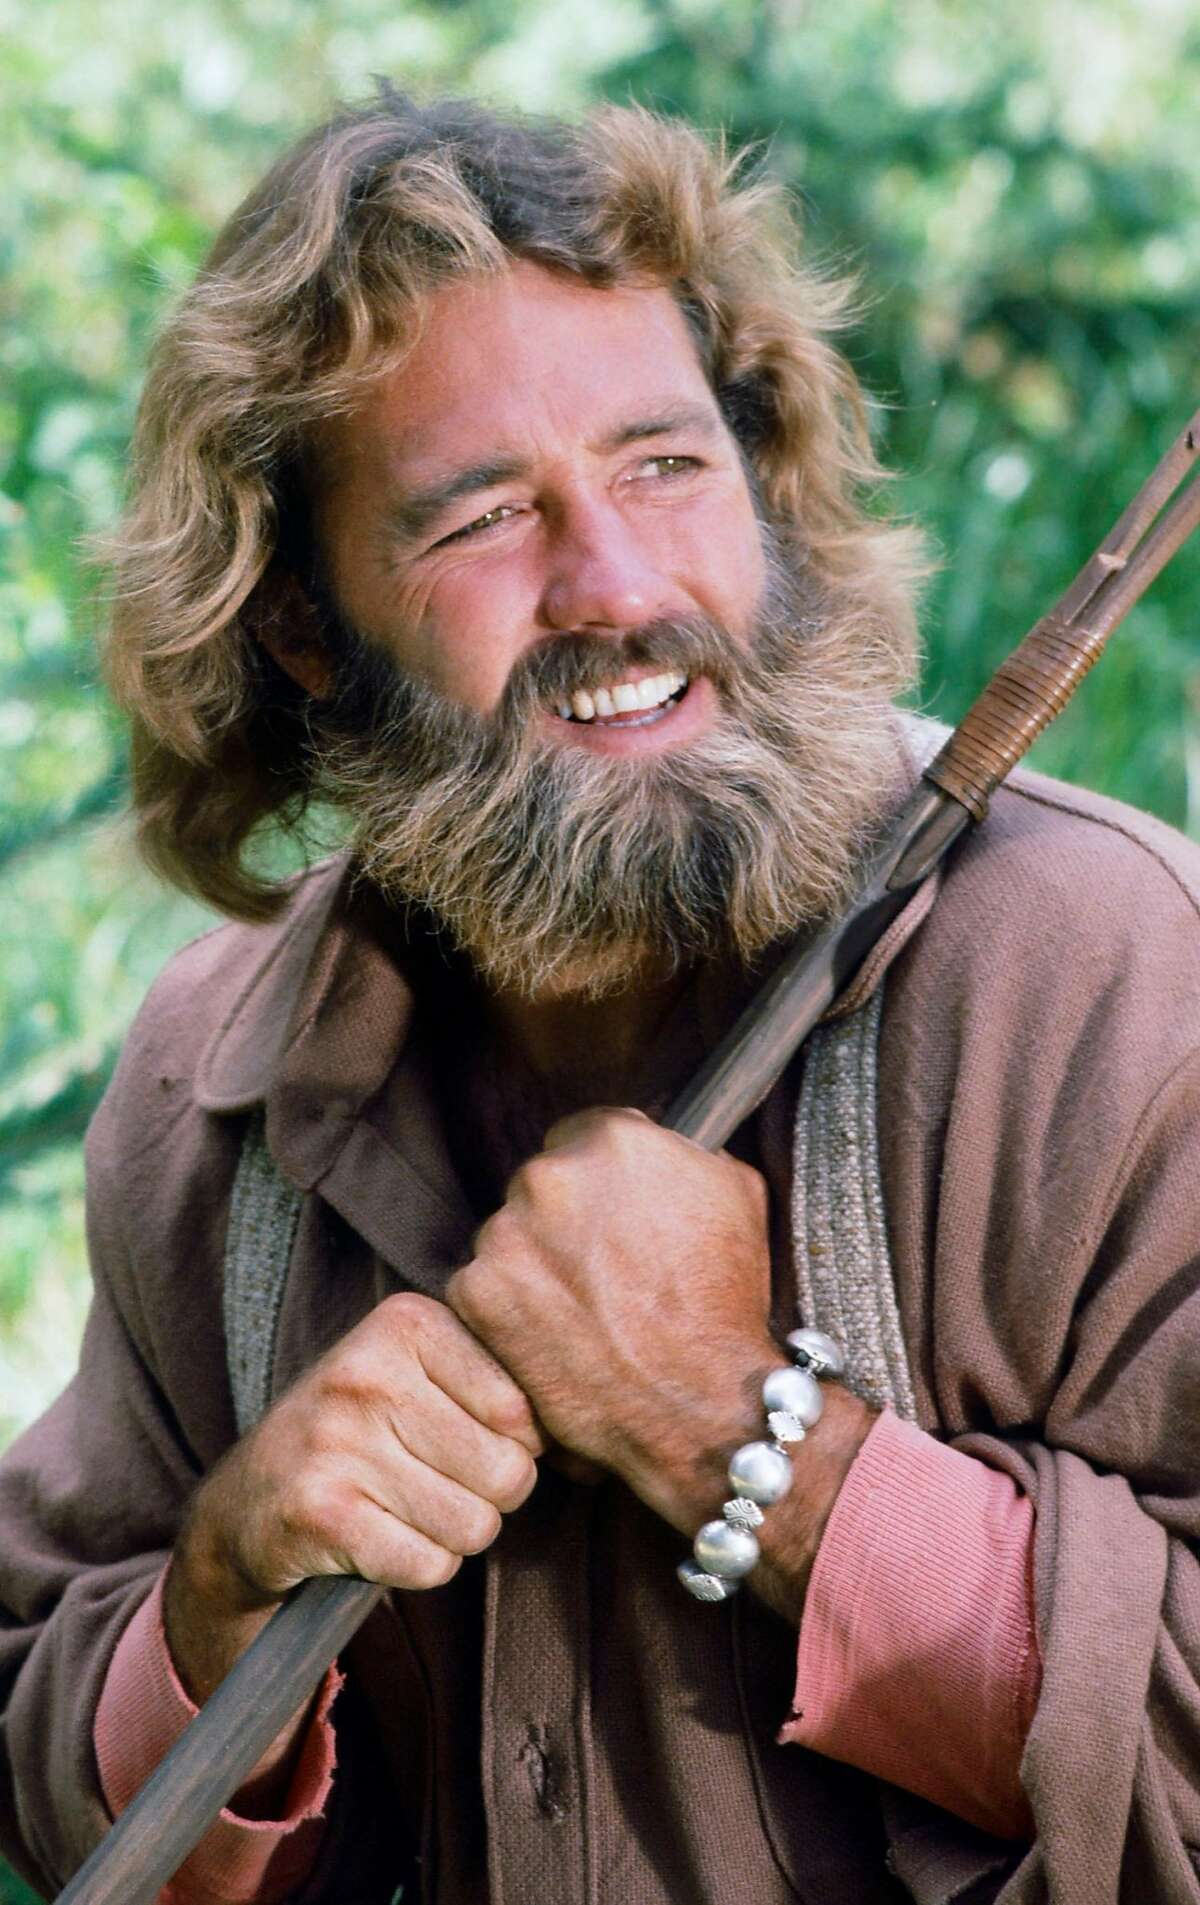 Christopher German, 20, was charged with with two felony counts of lewd and lascivious acts against children under the age of 14 in connection with two alleged groping incidents in San Leandro. THE LIFE AND TIMES OF GRIZZYLY ADAMS -- Pictured: Dan Haggerty as James 'Grizzly' Adams -- (Photo by: NBC/NBCU Photo Bank)